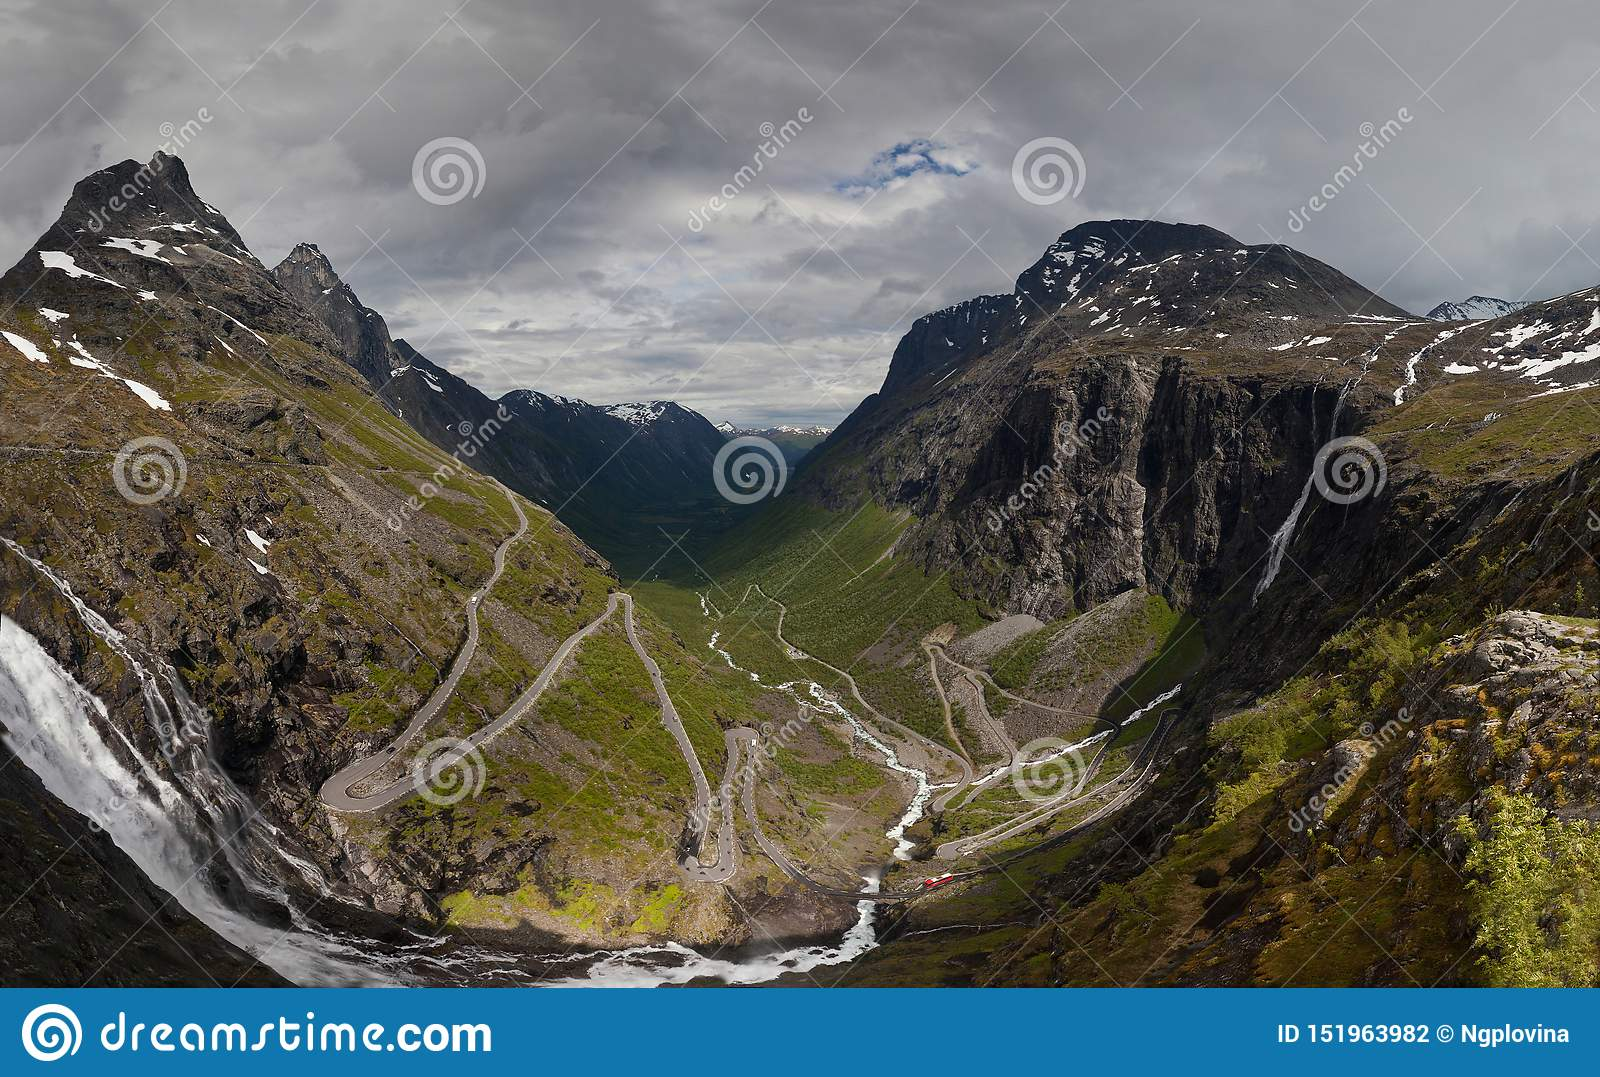 Trollstigen road. The panorama of world famous curvy road of Trollstigen with abrupt turns with a cloudy sunny sky on